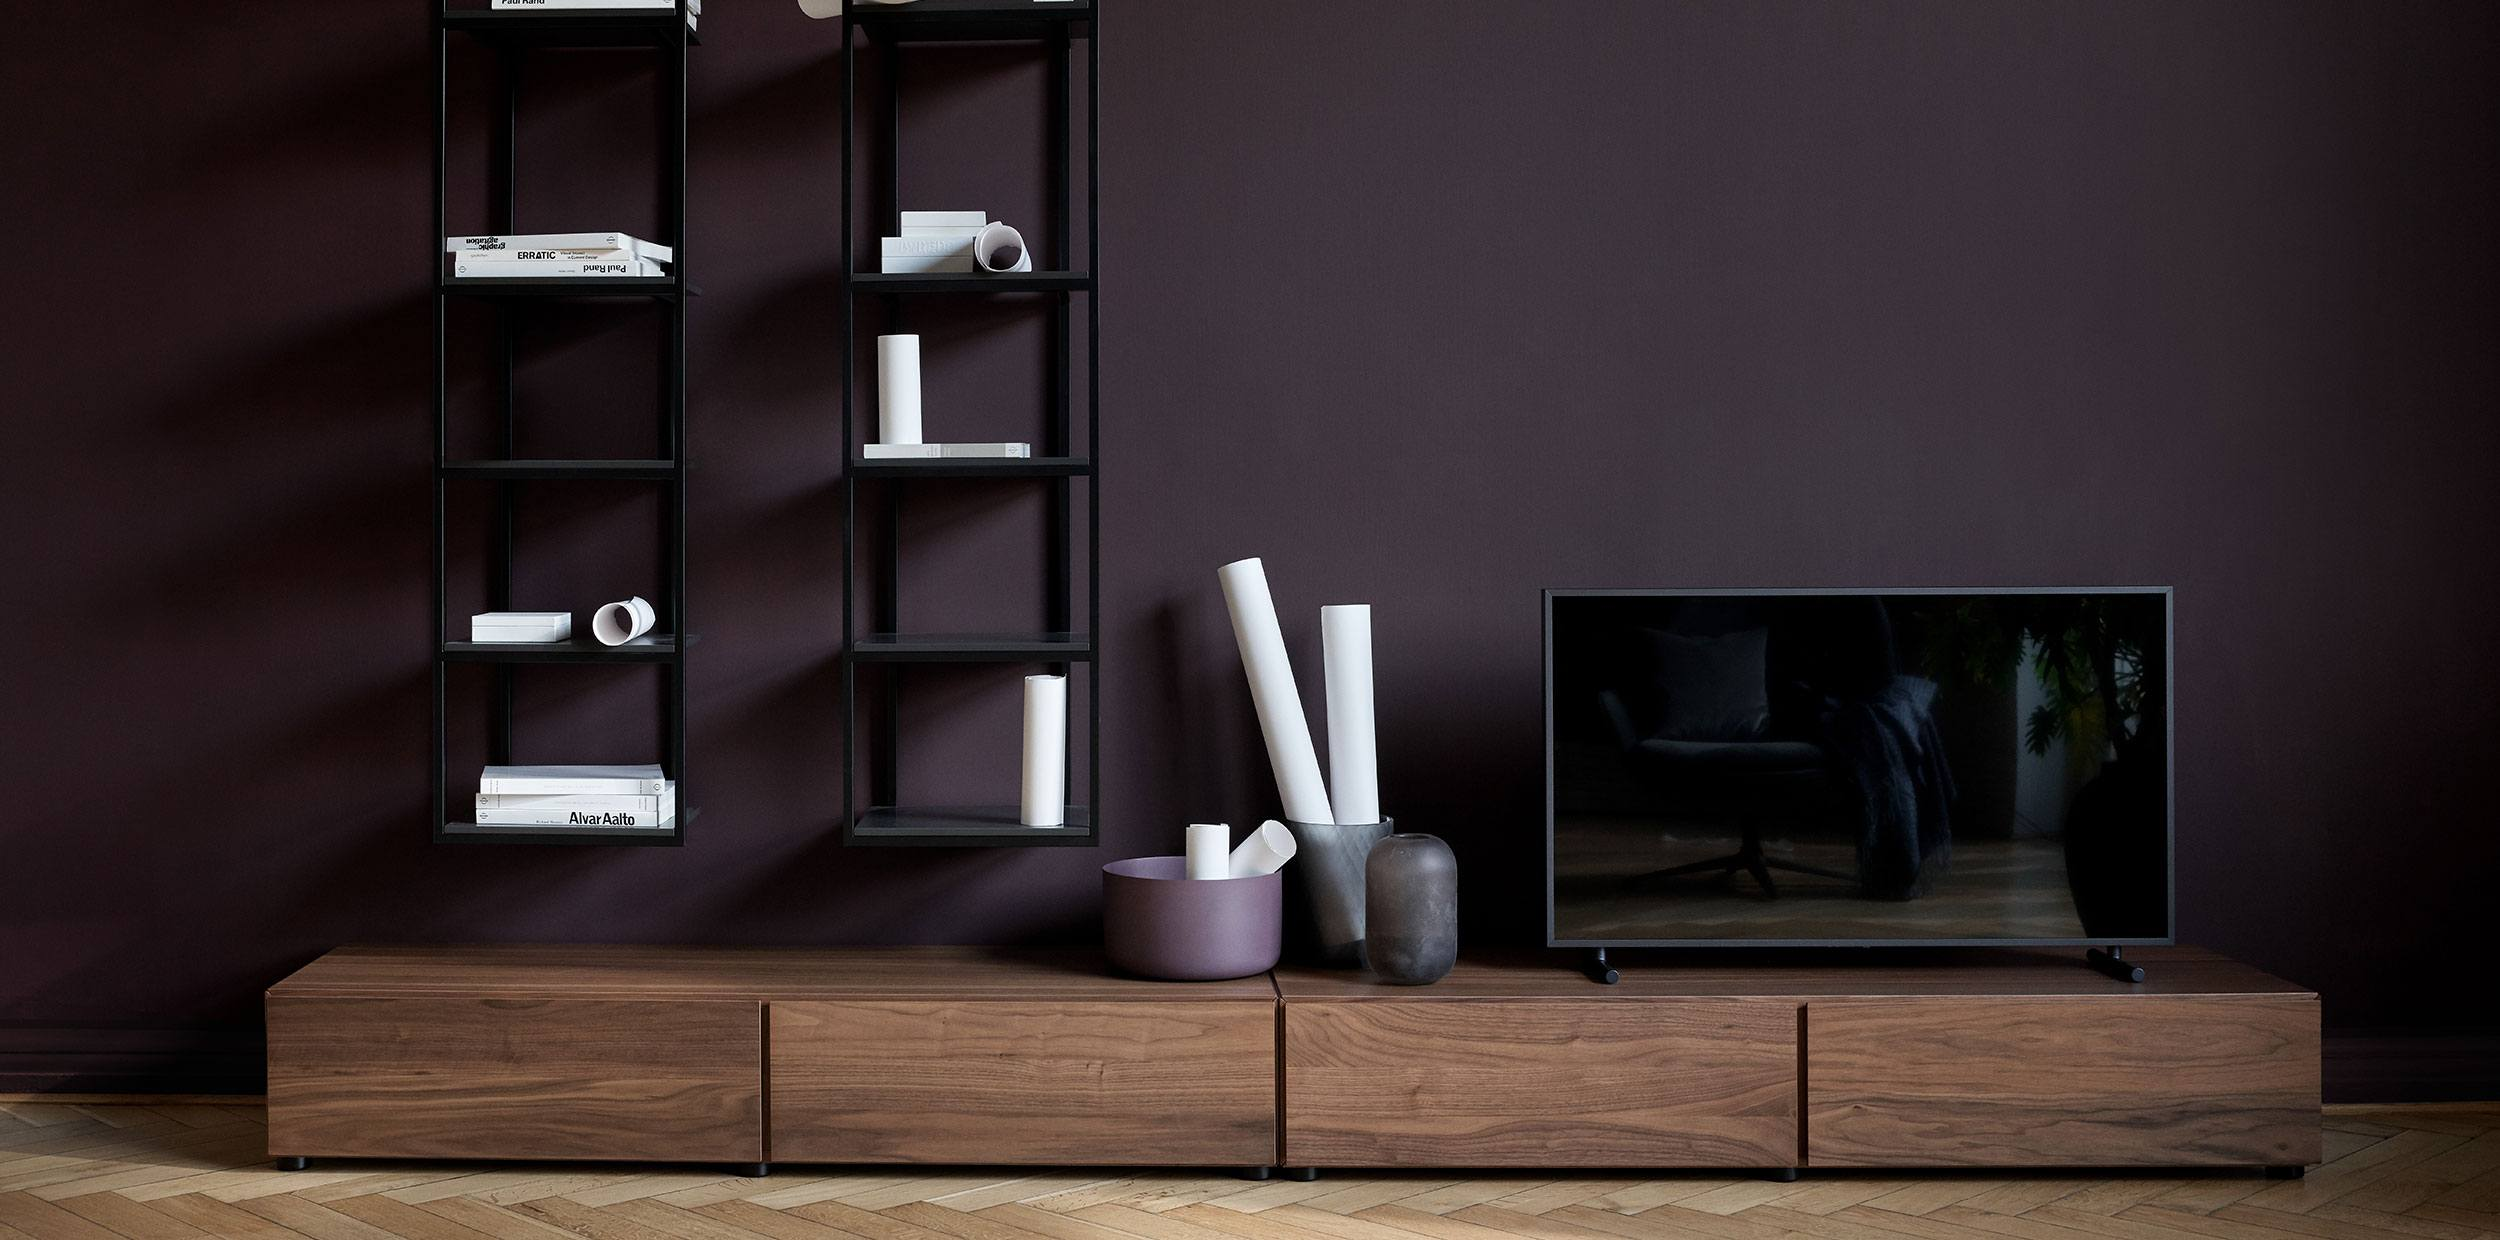 Lugano tv units in walnut veneer and charcoal grey Bordeaux wall systems with matt black structure